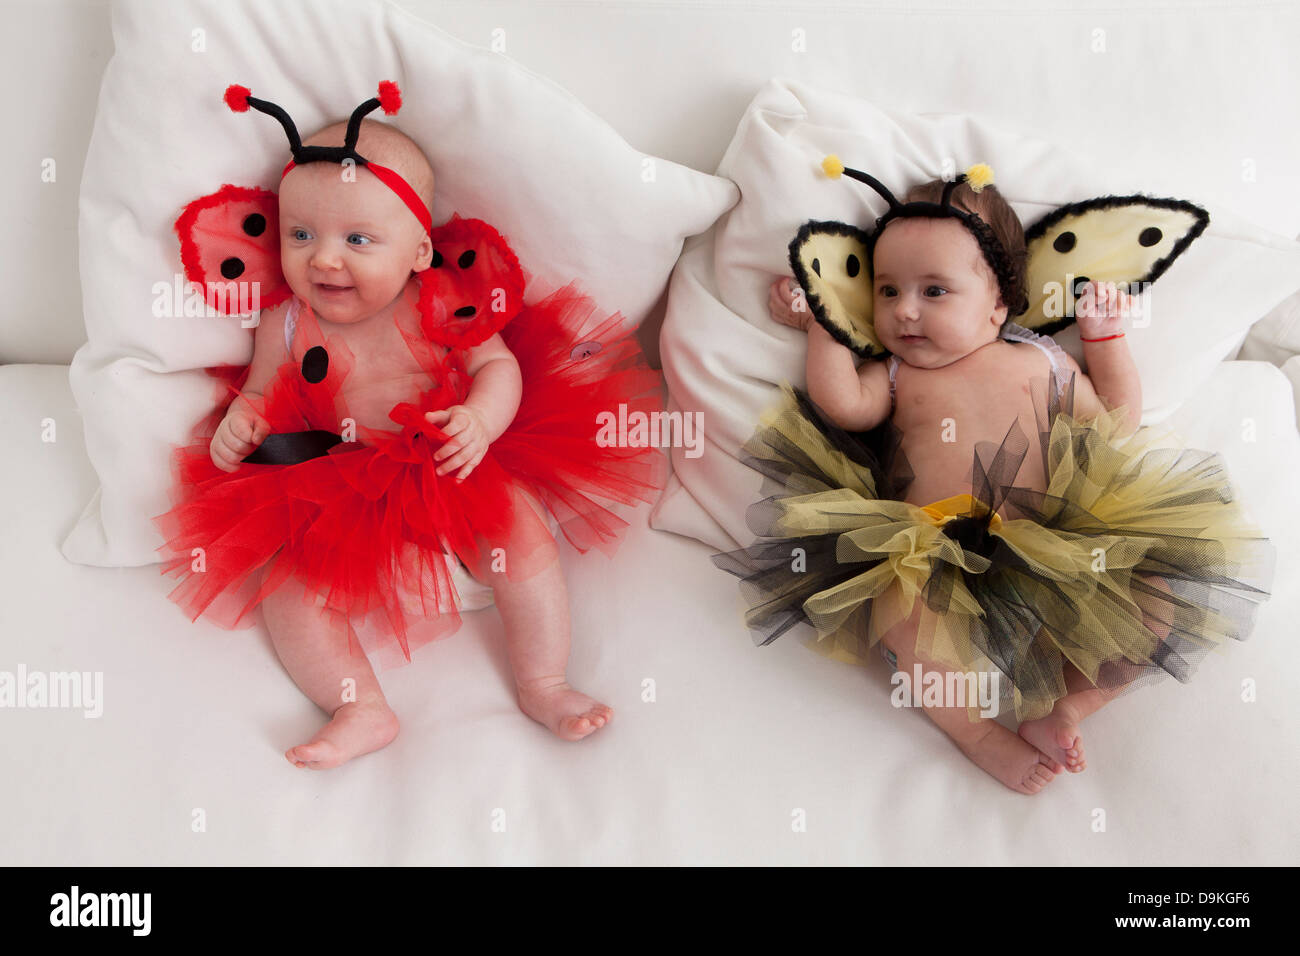 baby girls dressed as insects - Stock Image